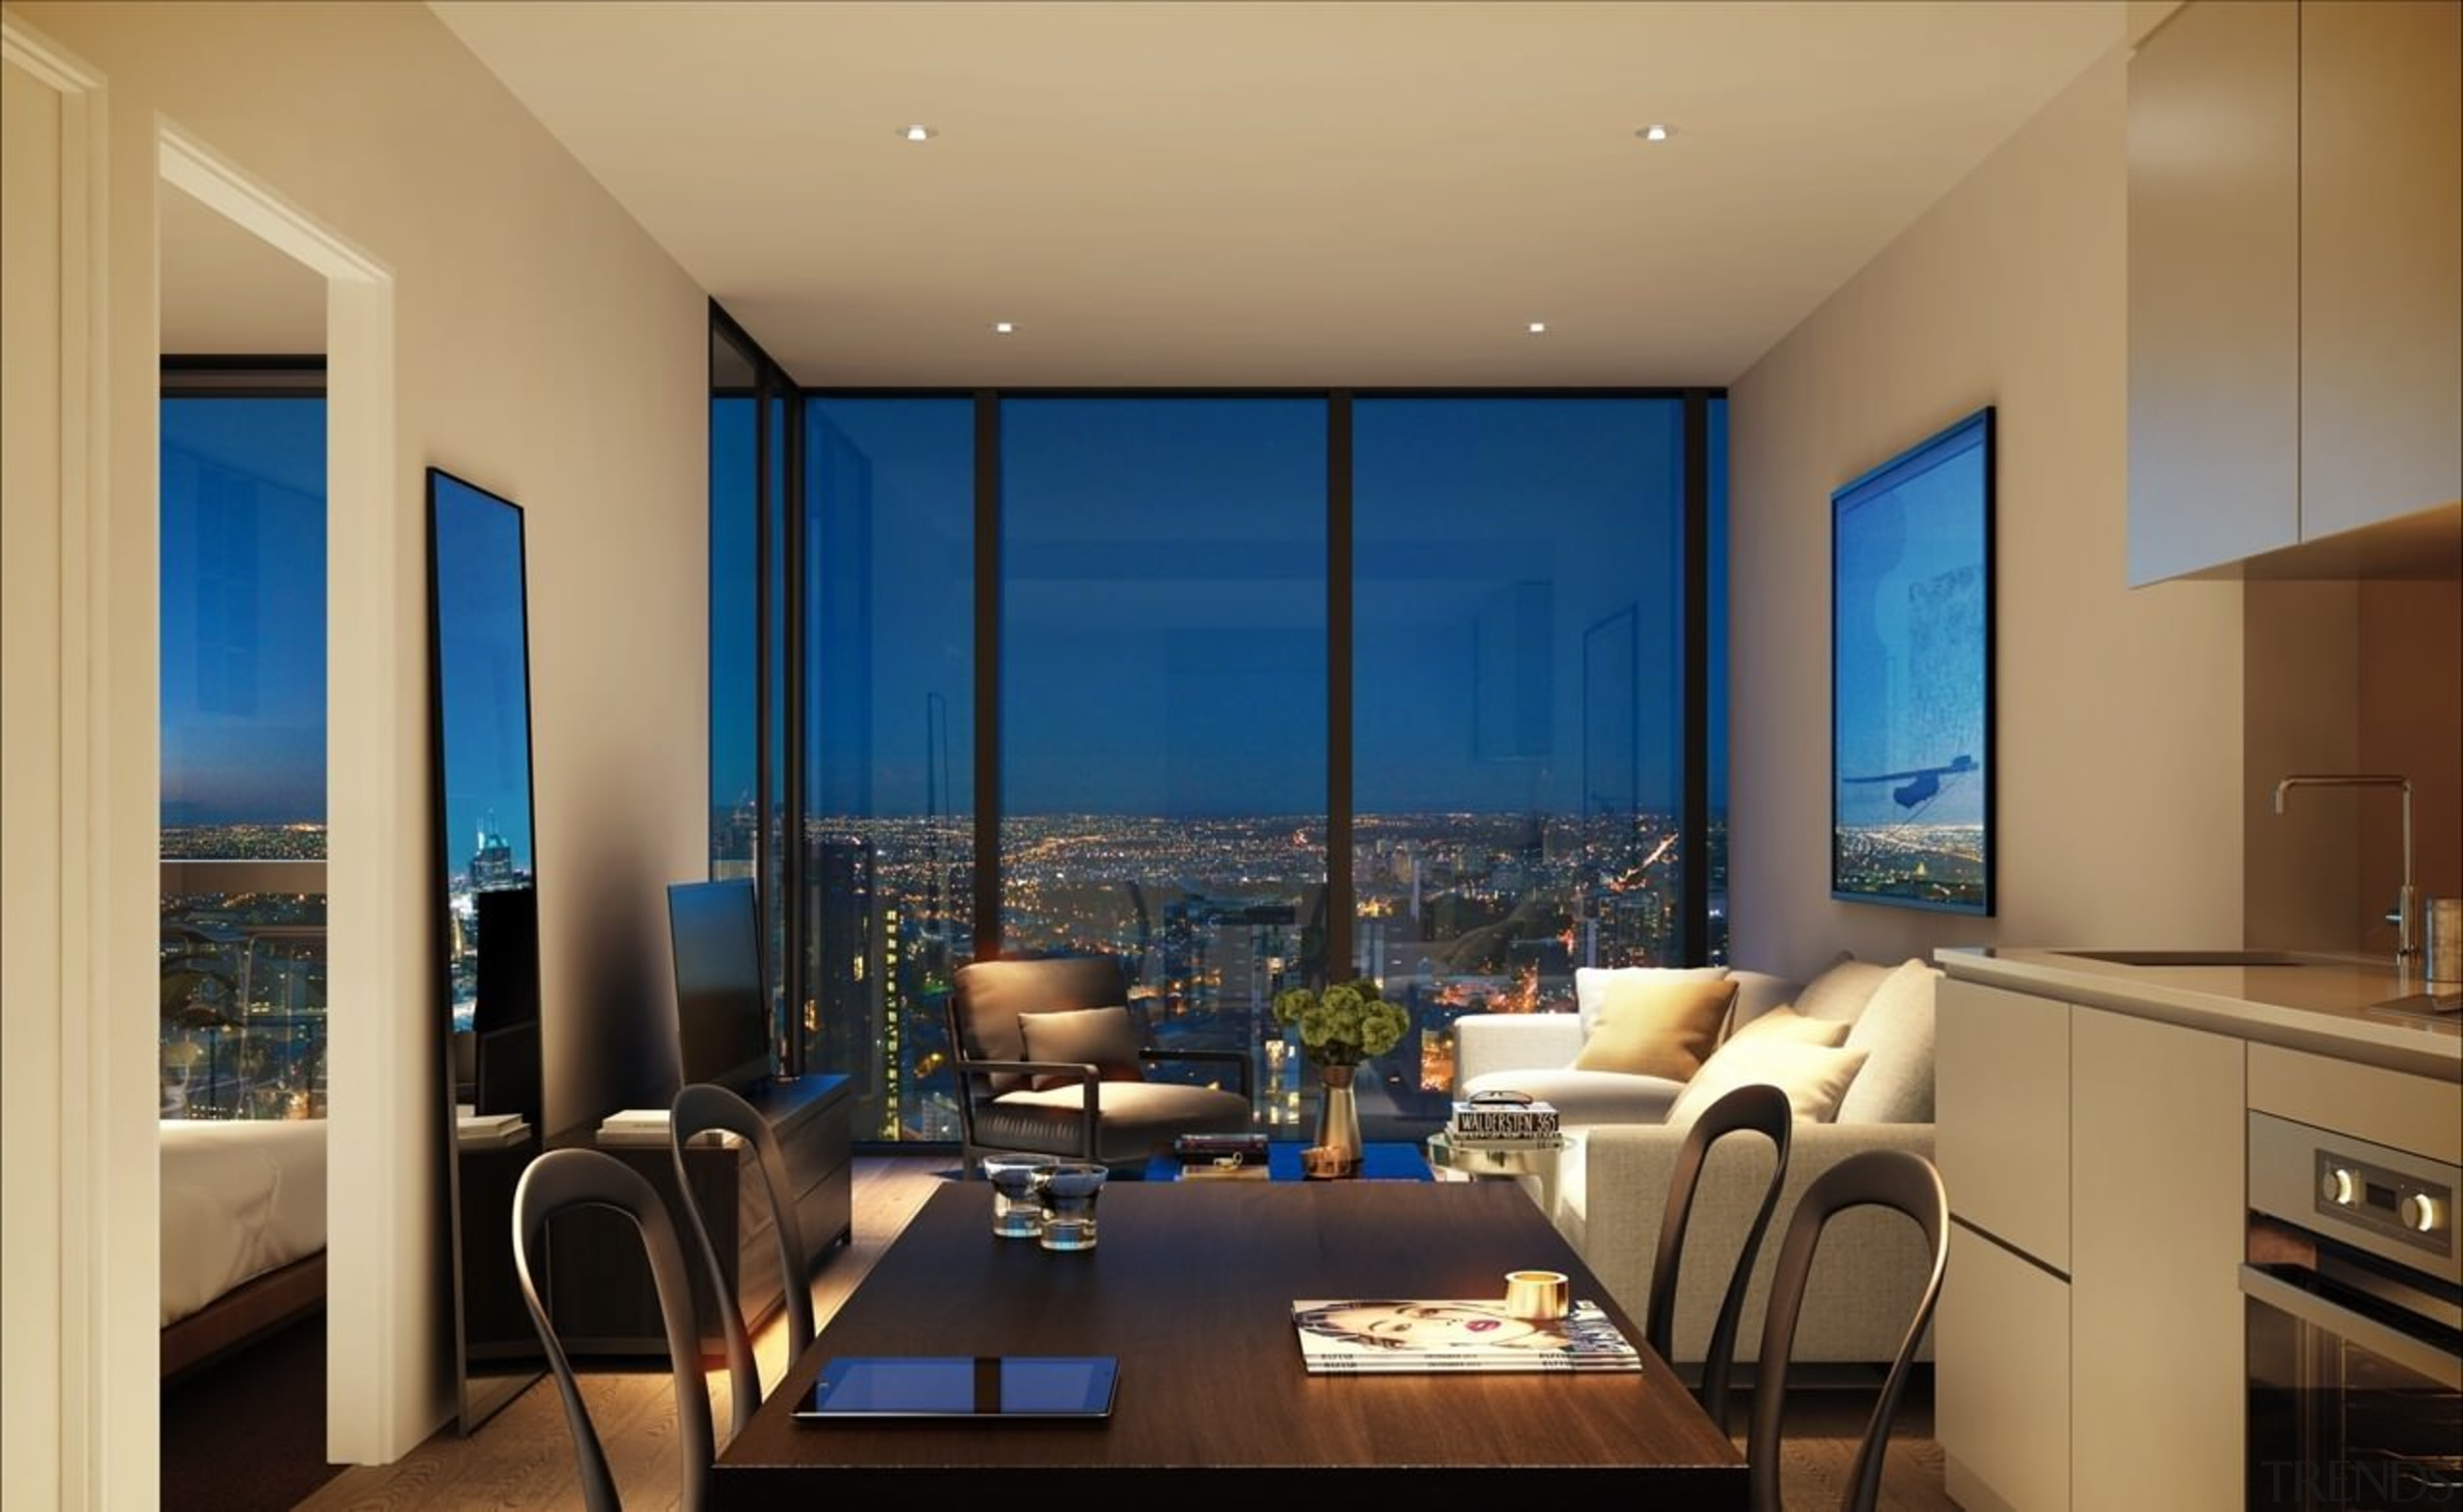 This living room features unparalleled Melbourne views apartment, ceiling, dining room, home, interior design, living room, penthouse apartment, real estate, room, suite, window, orange